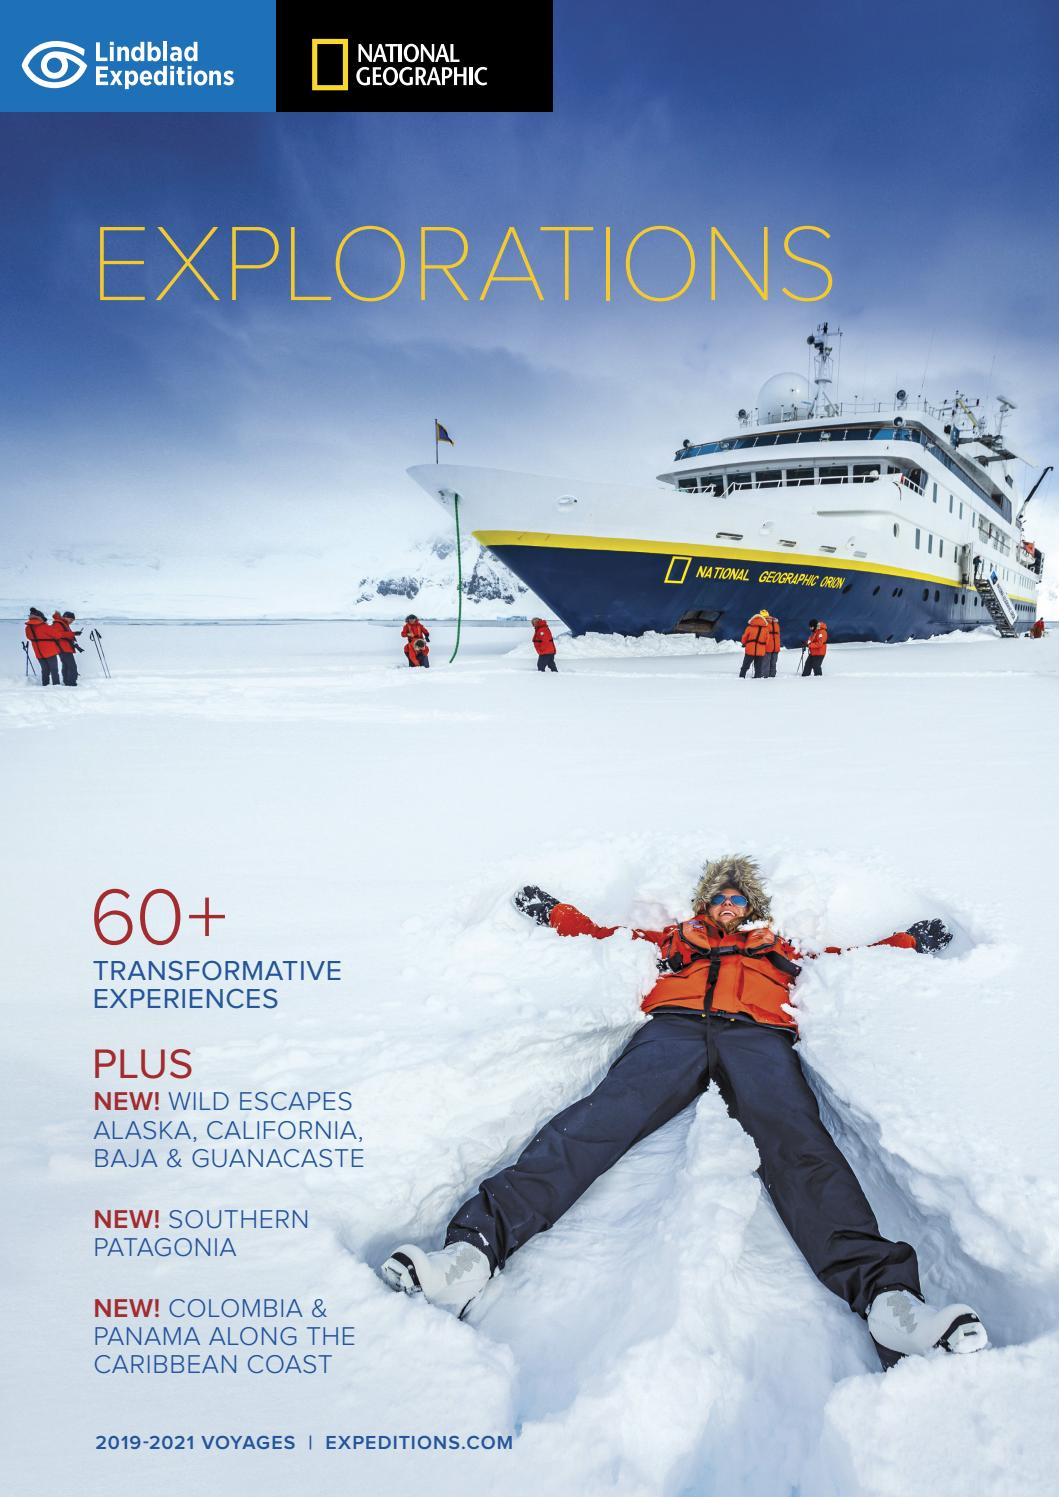 Lindblad Expeditions - National Geographic Explorations